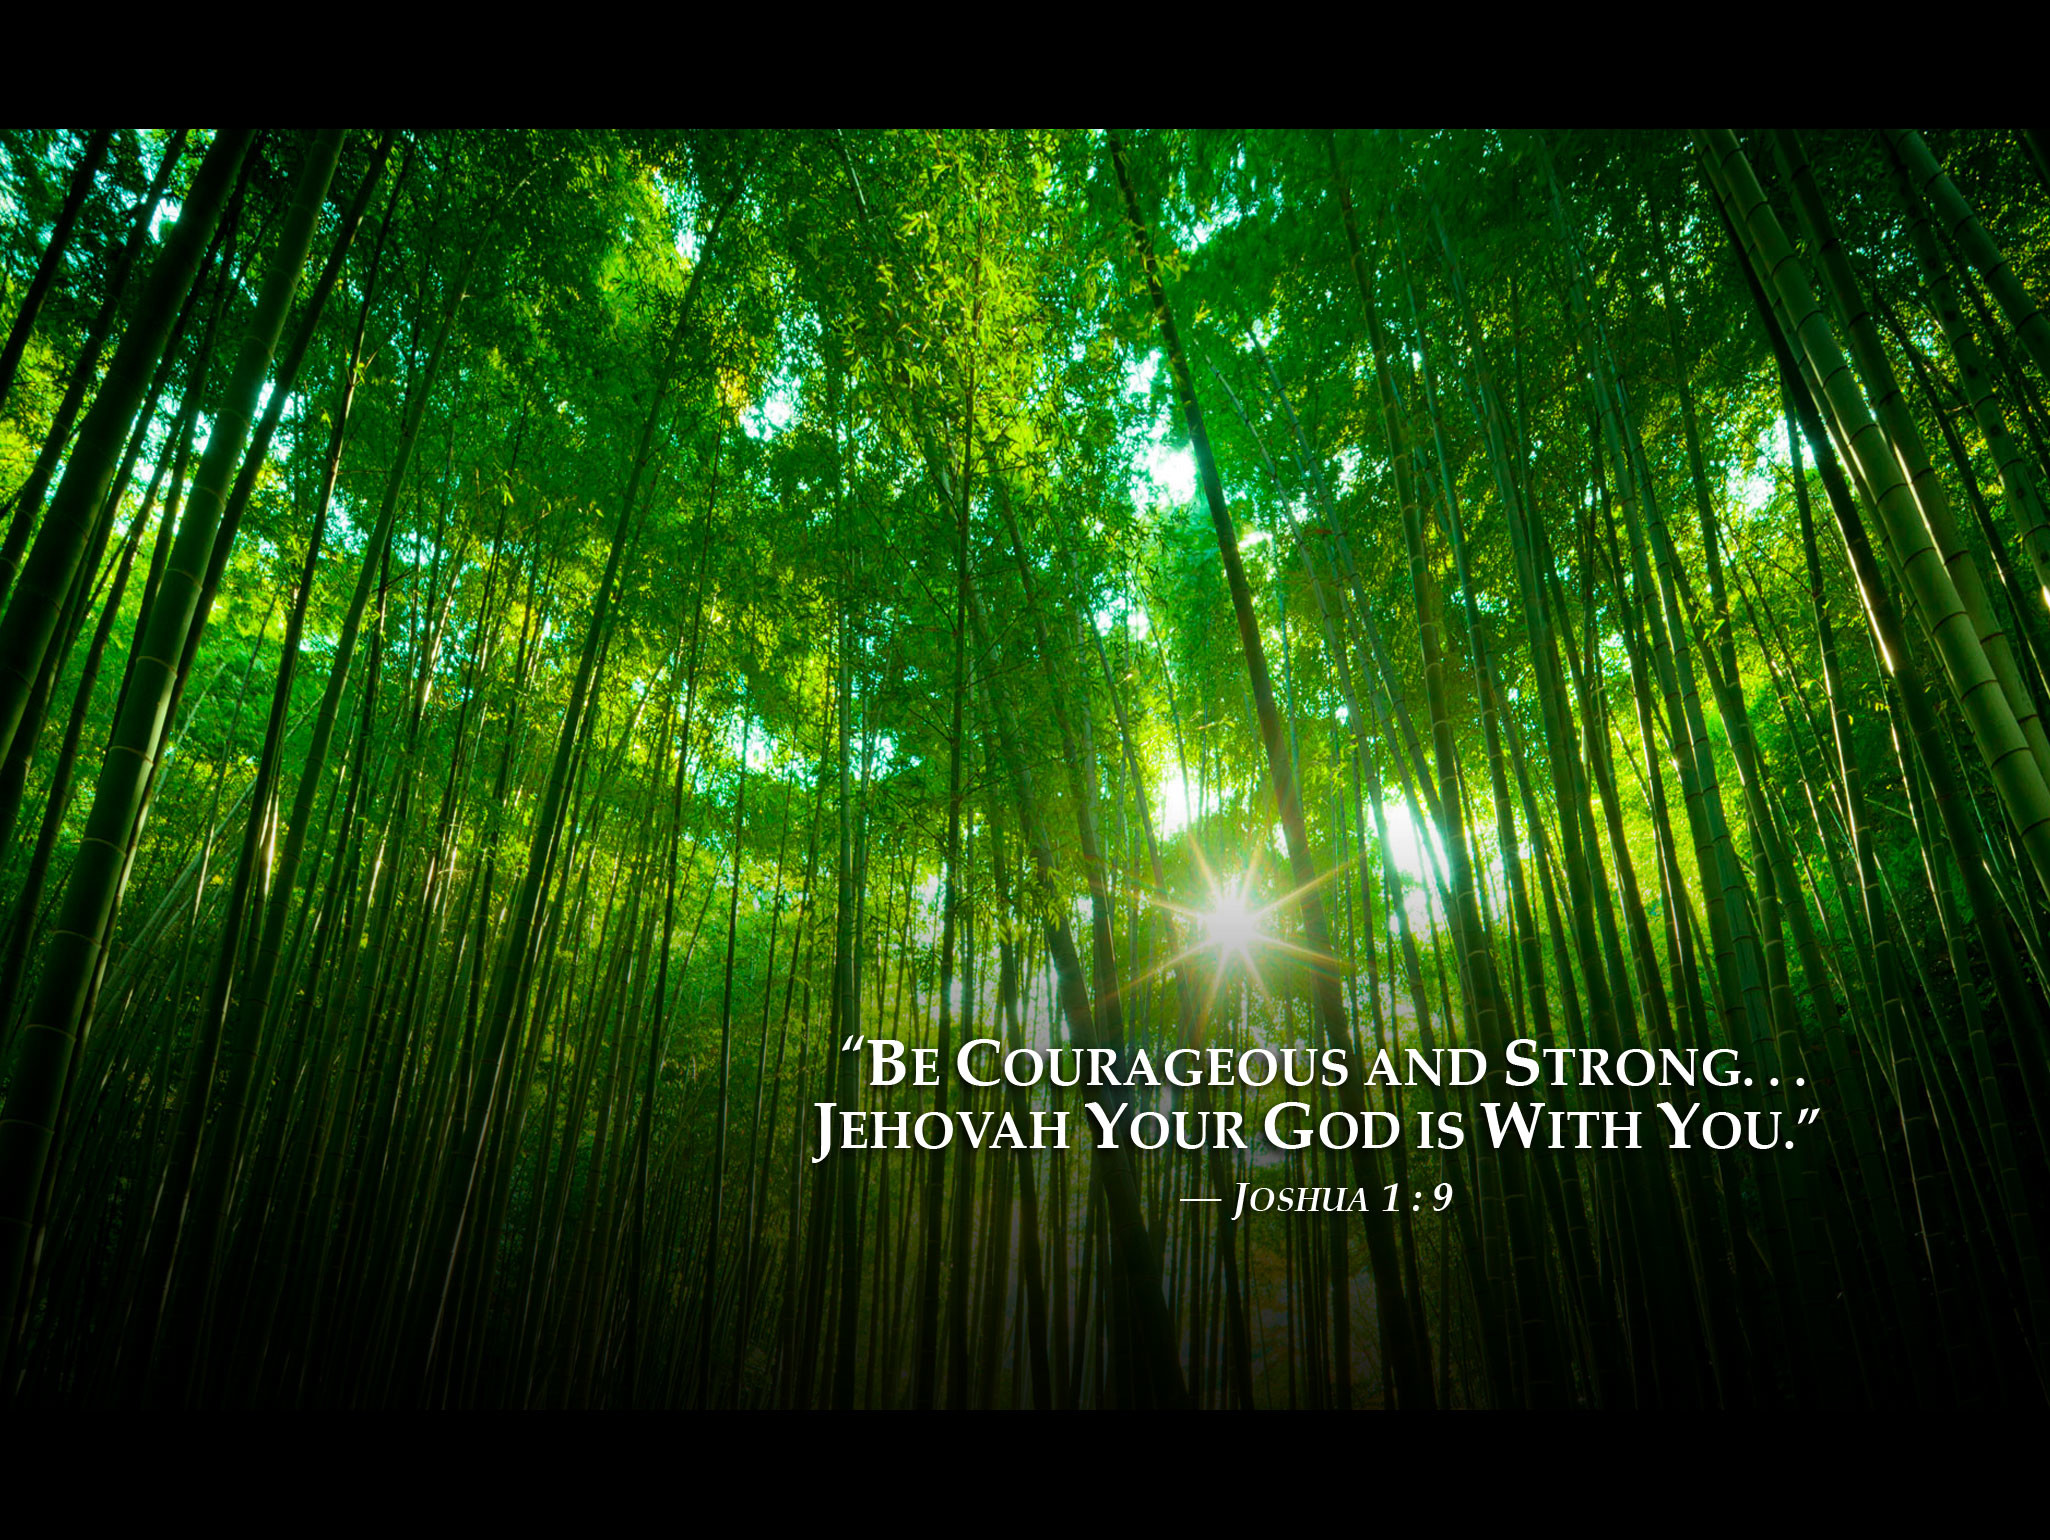 Ipad Iphone Hd Wallpaper Free: Jw Org Wallpaper Desktop (64+ Images